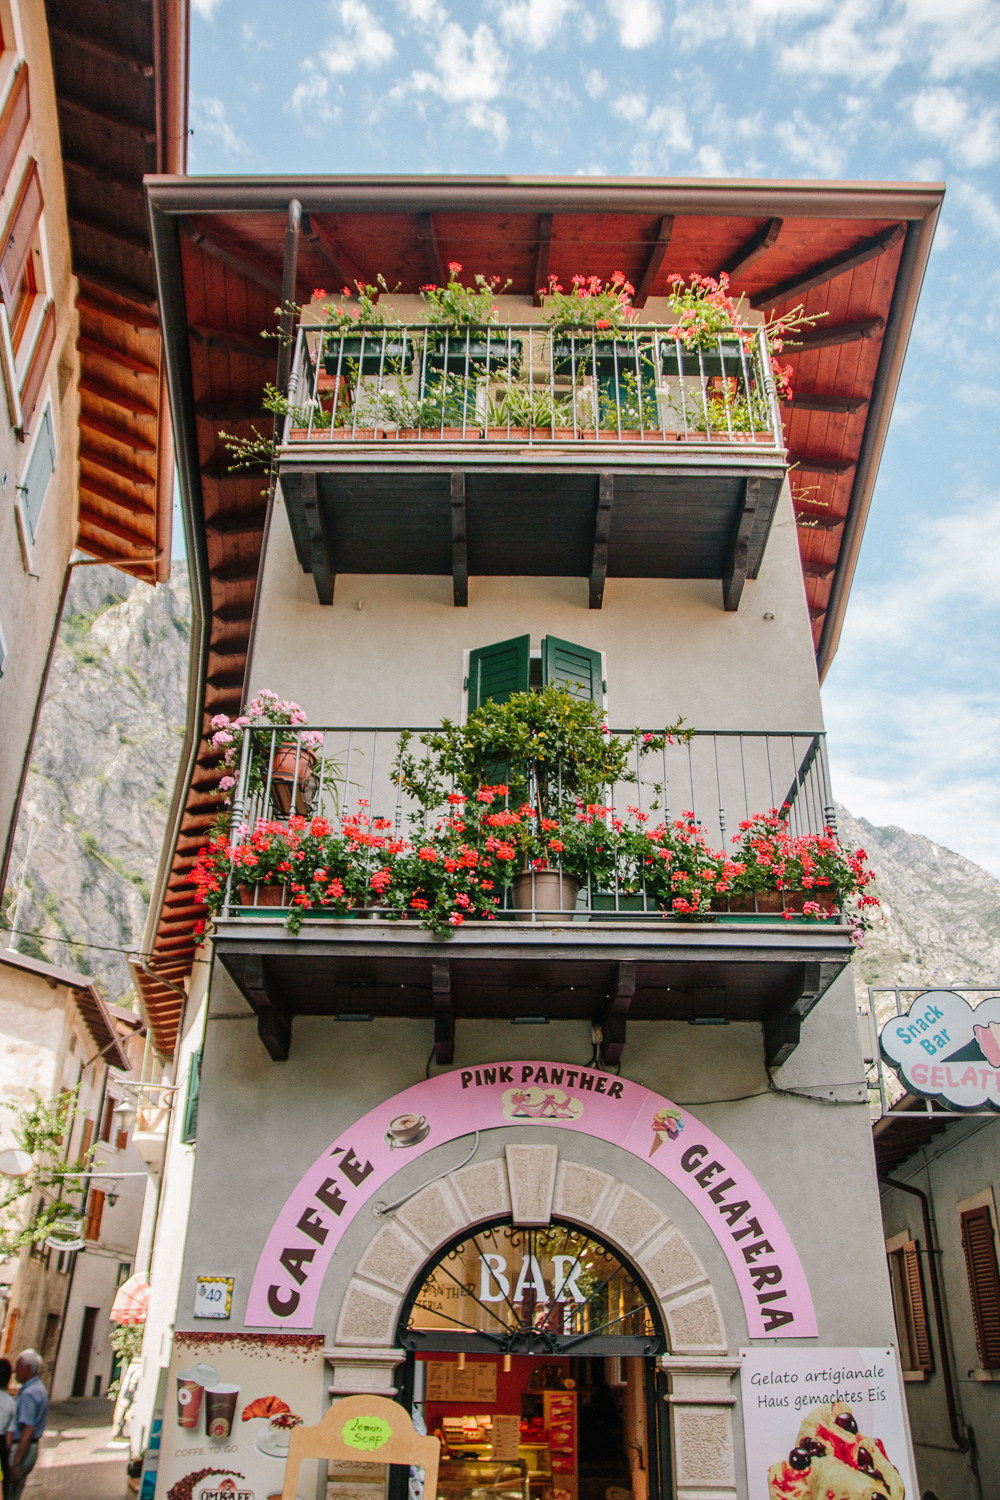 A tall building in Limone, Lake Garda, lined with colourful flower boxes